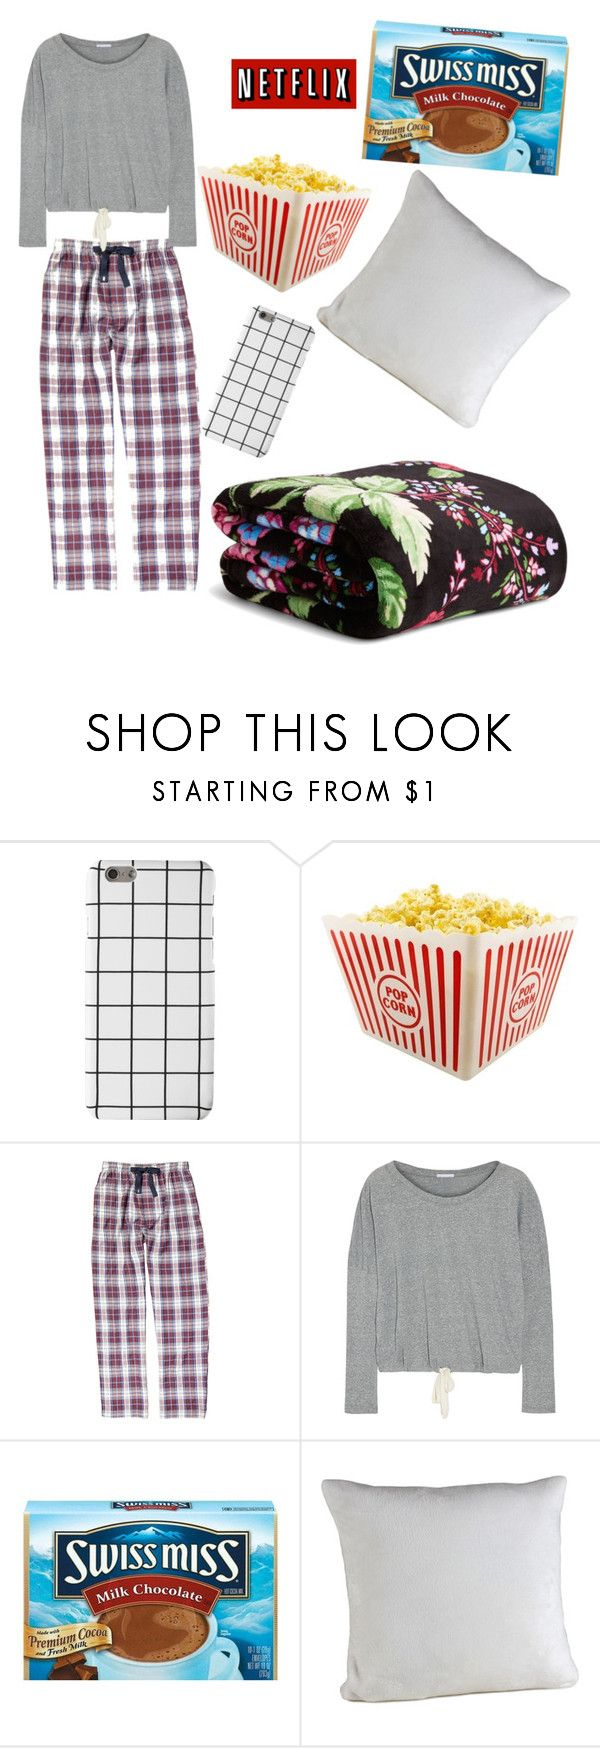 """""""Netflix and chill night"""" by melissa-kalay ❤ liked on Polyvore featuring Izod, Eberjey, Berkshire Blanket and Vera Bradley"""